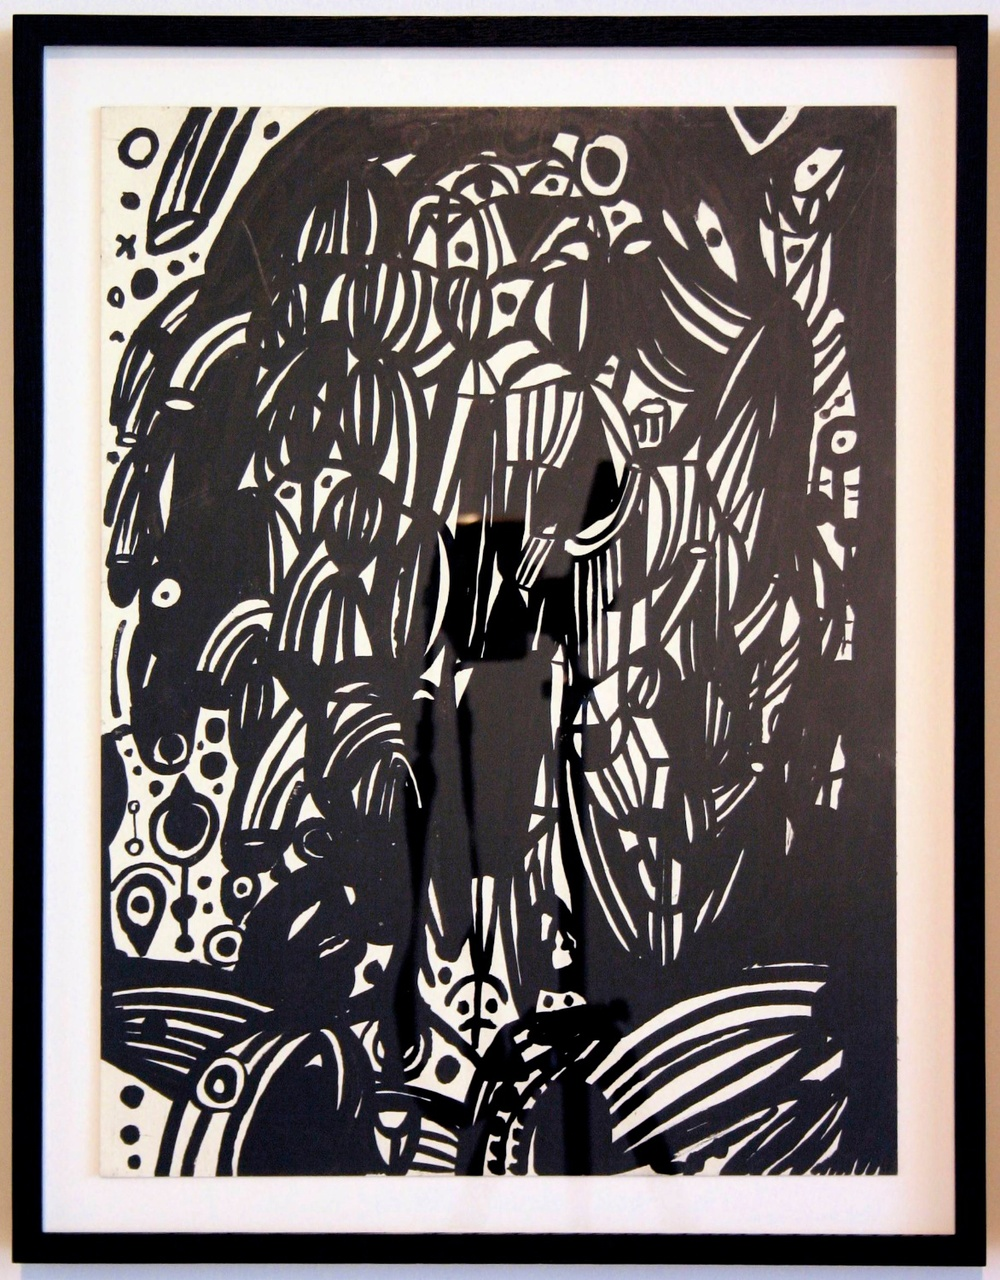 "William J. O'Brien Untitled 2006 Ink on board 19 ⅞"" x 14 ⅞"" WOB054"